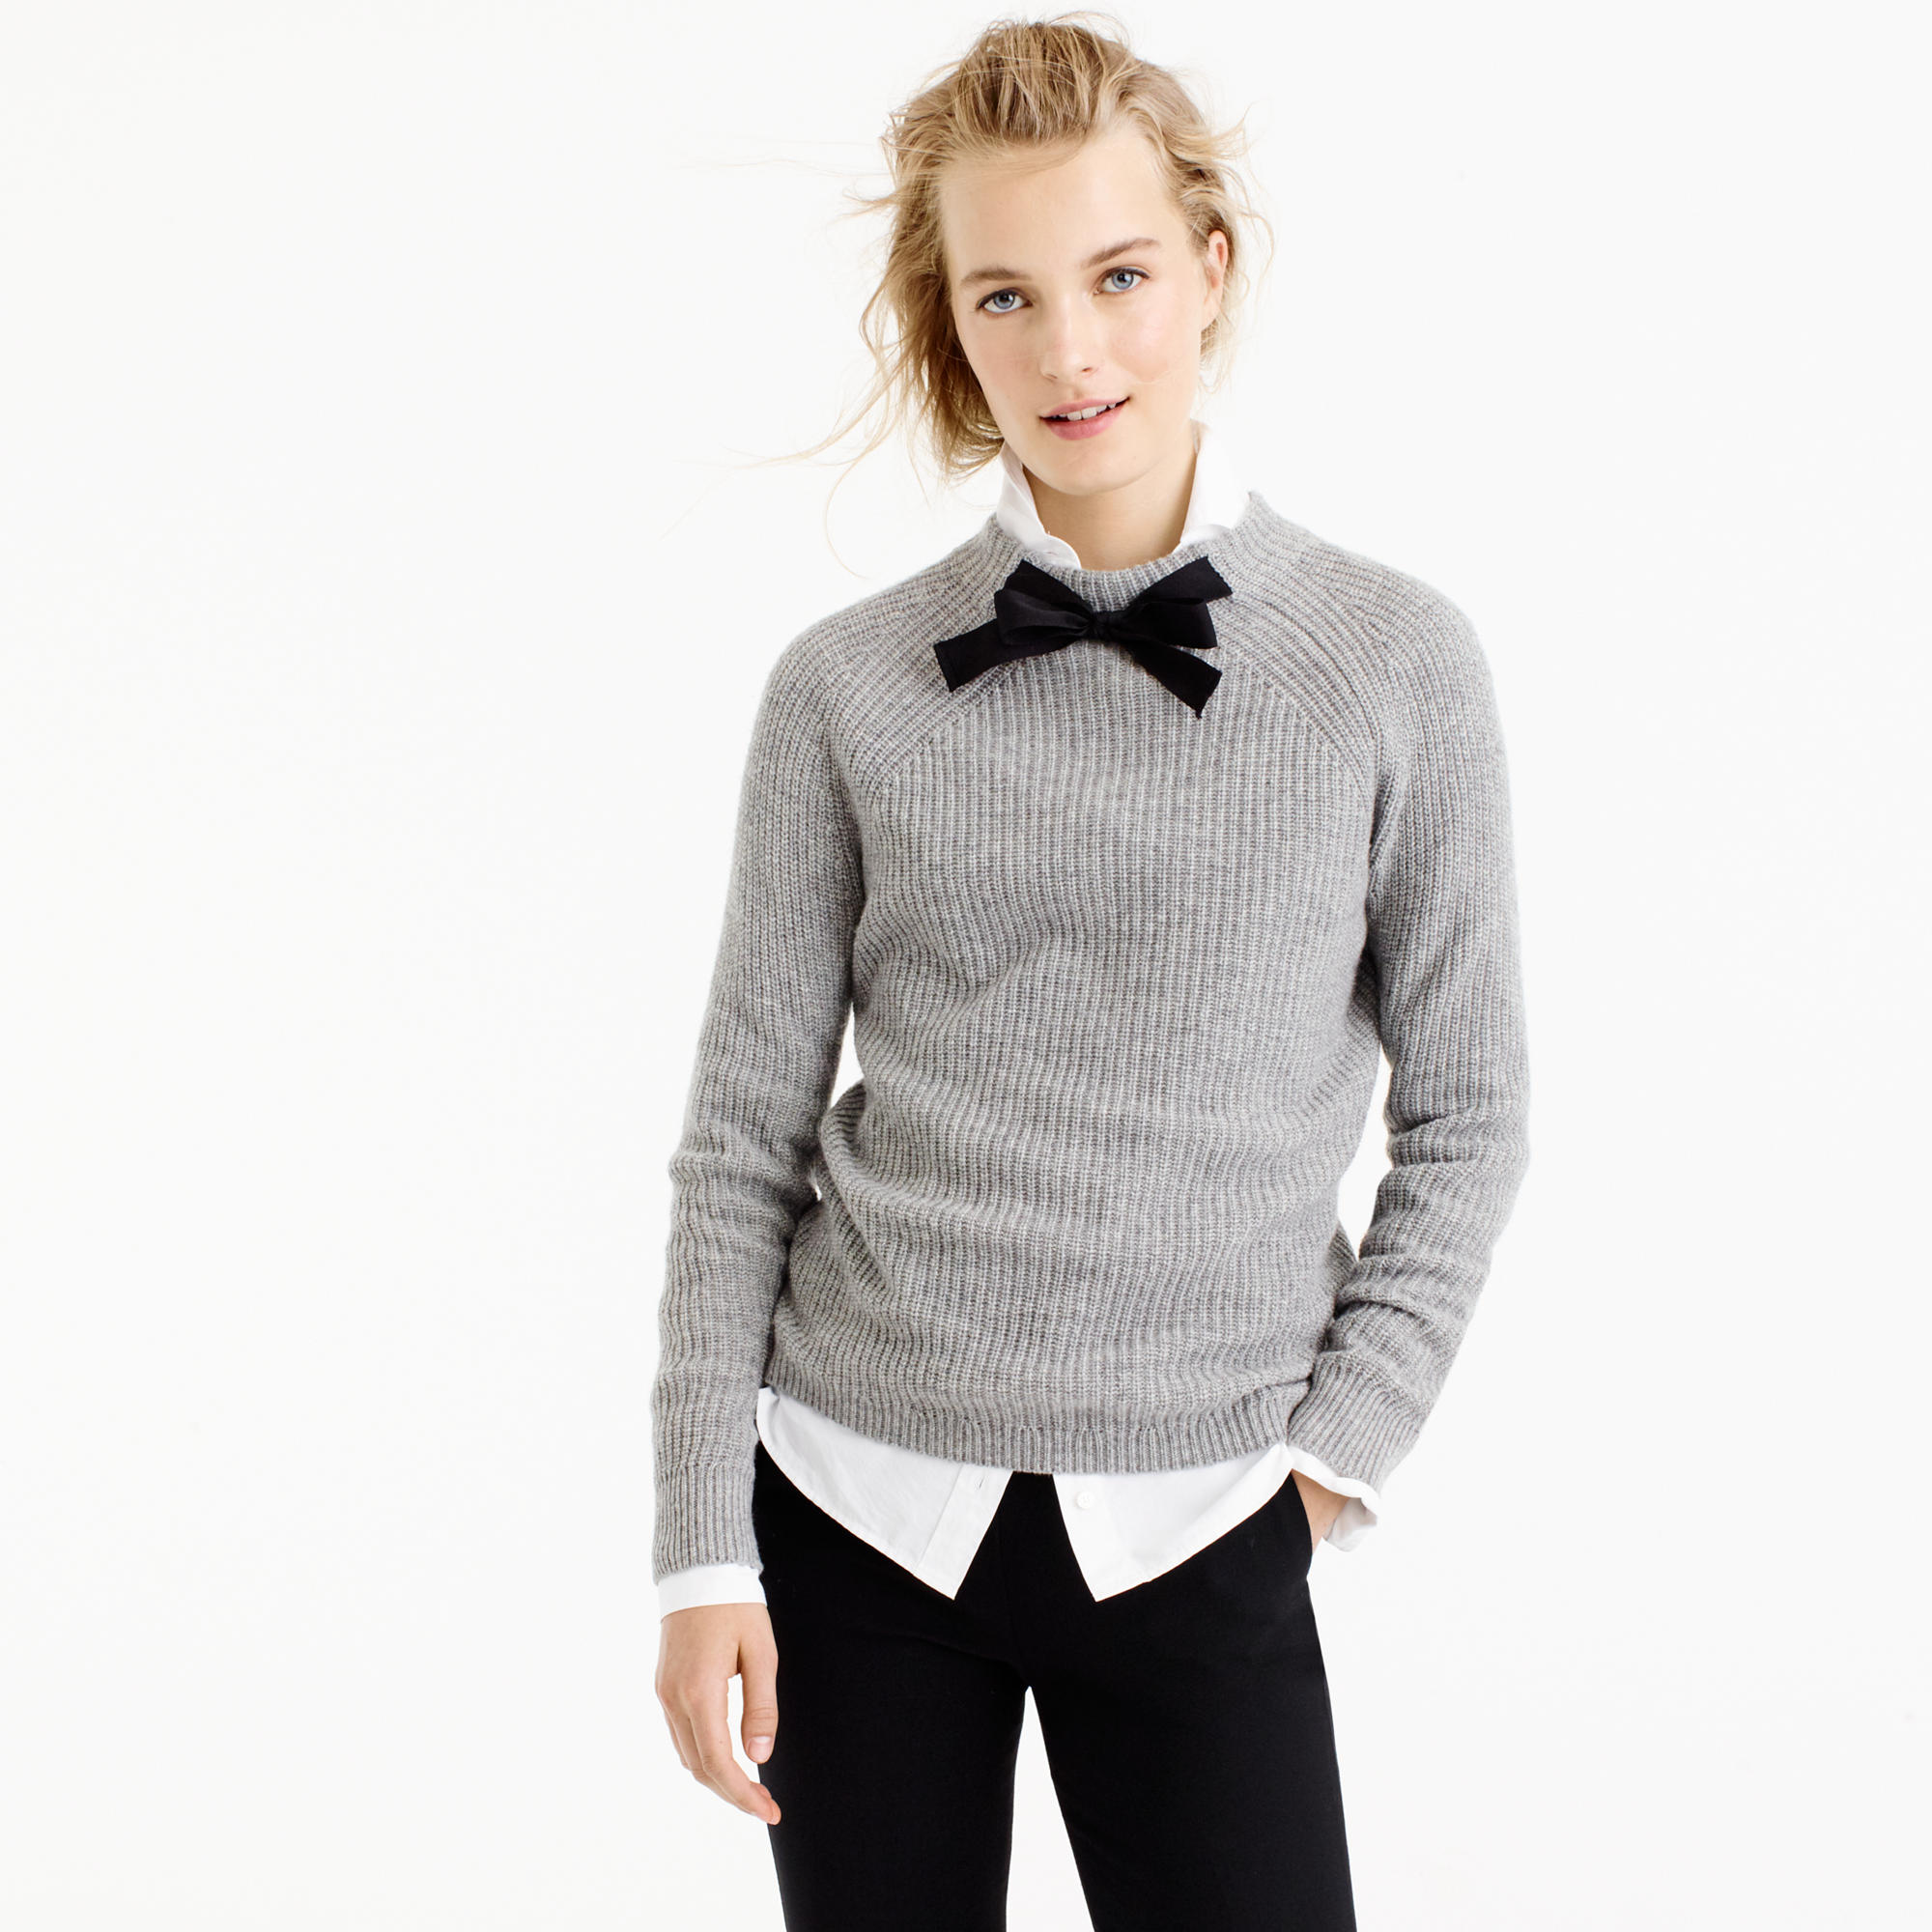 J Crew grey tie neck sweater |  | see more on www.shoppingmycloset.com #jcrew